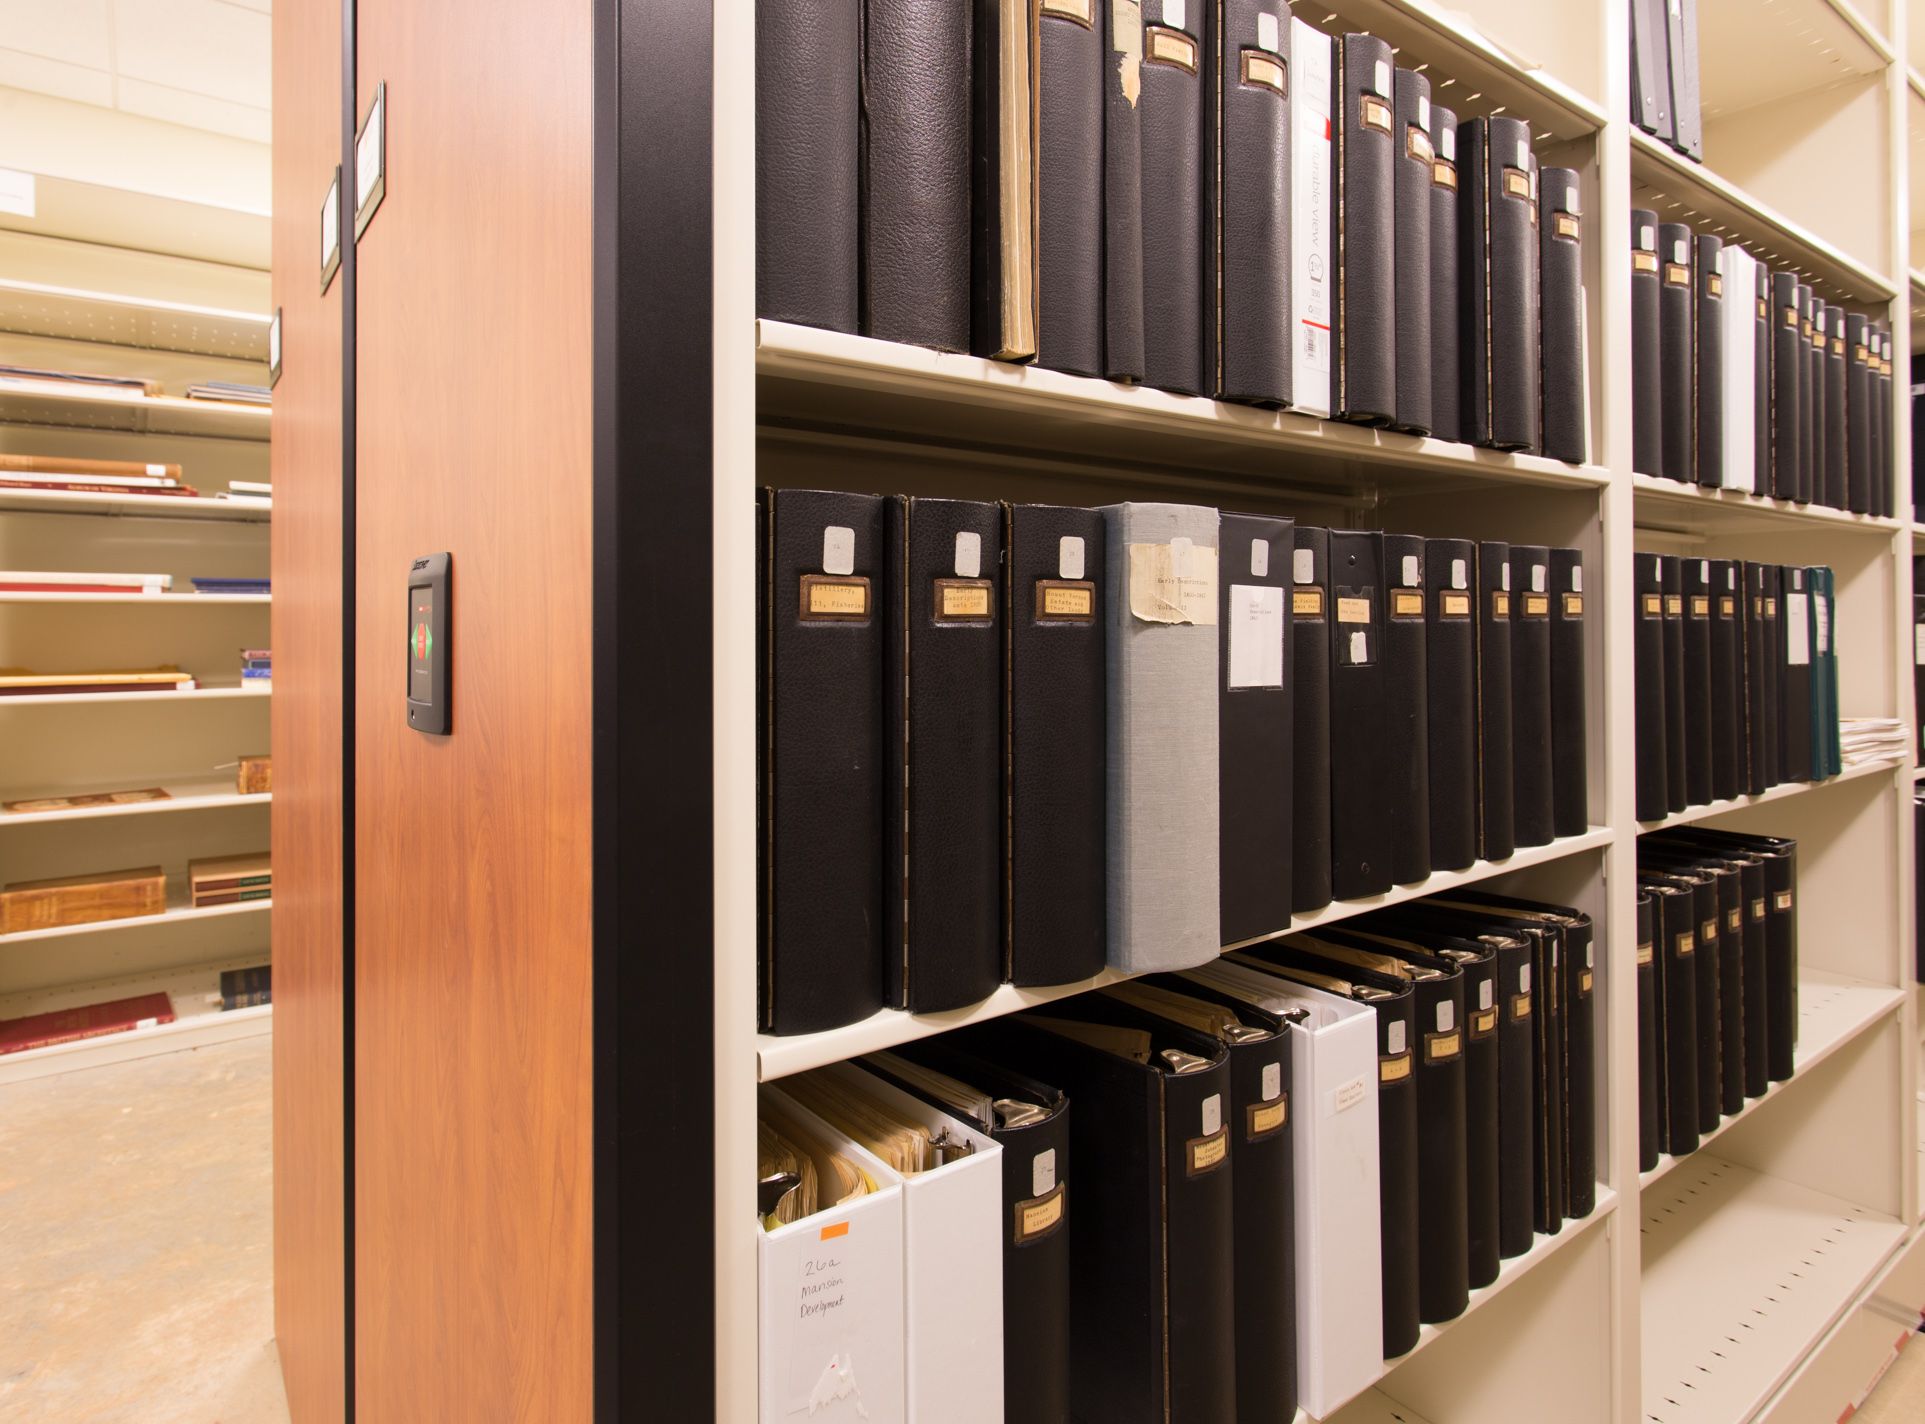 archival record storage at George Washington library